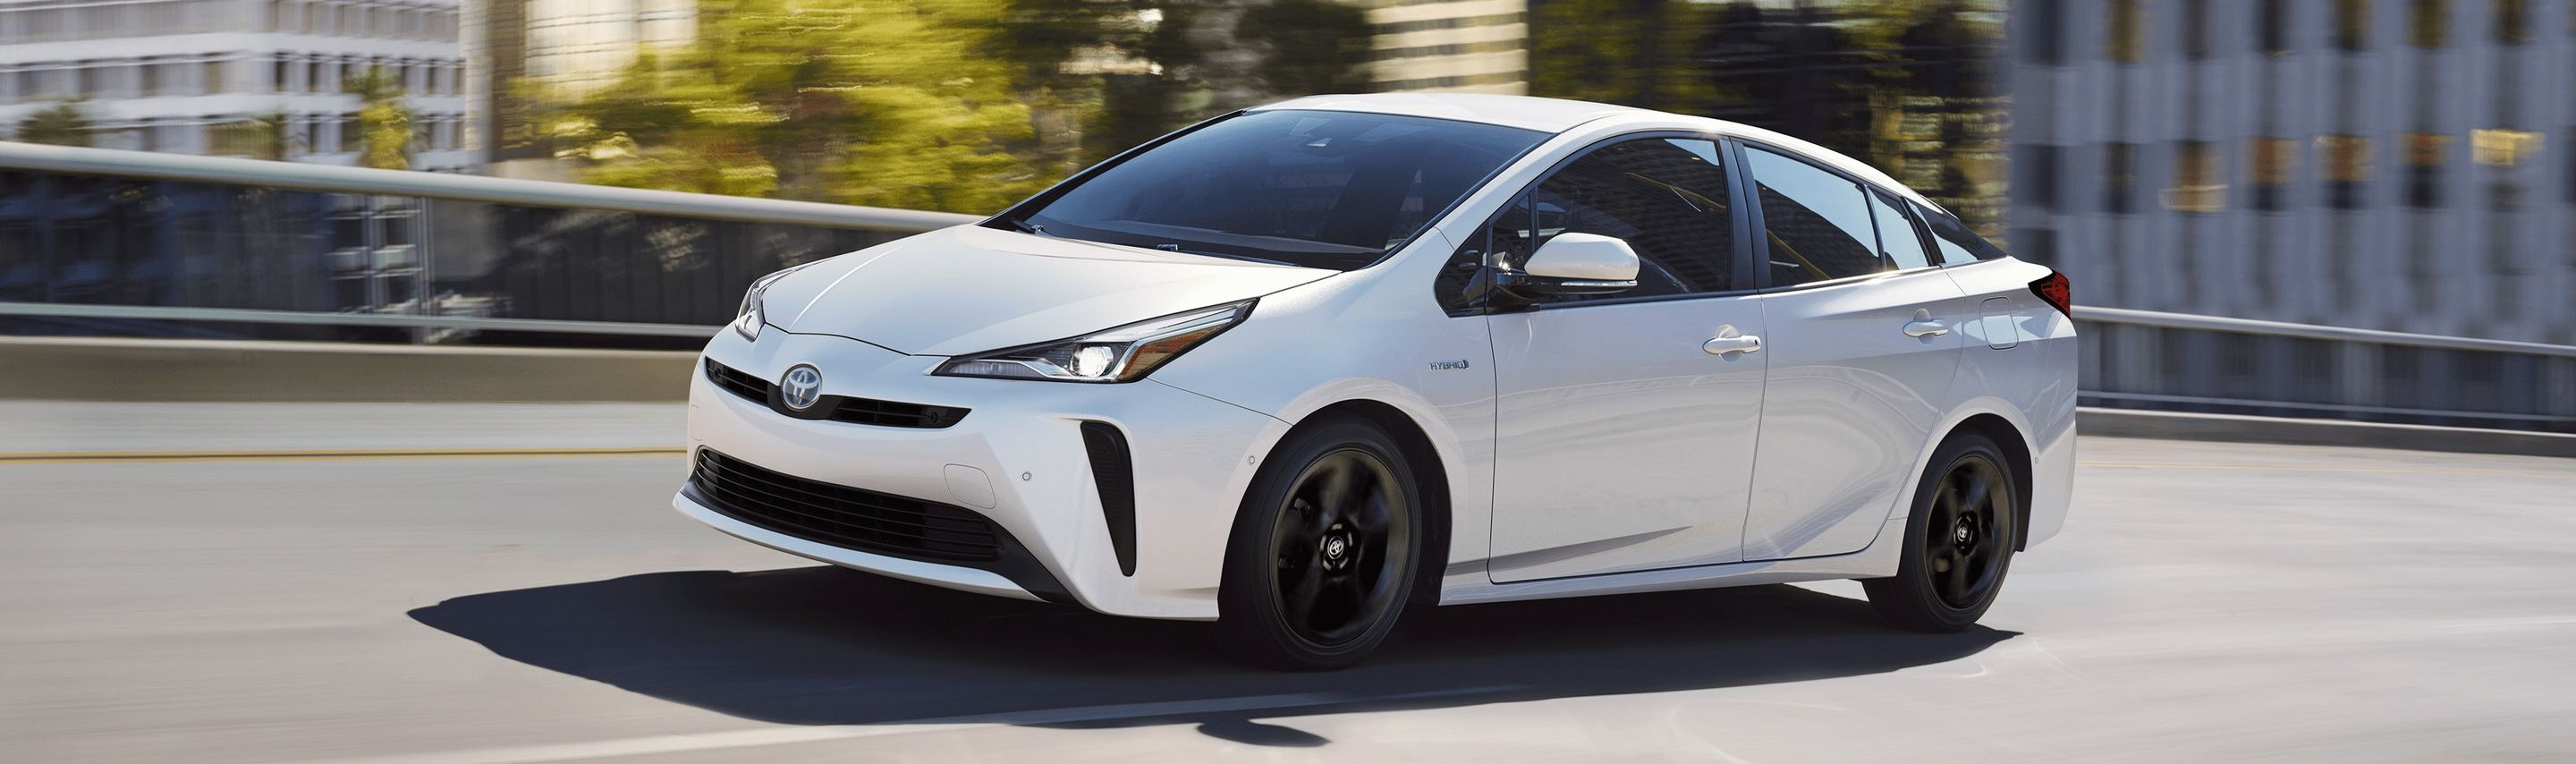 2020 Toyota Prius for Sale in Iowa City, IA